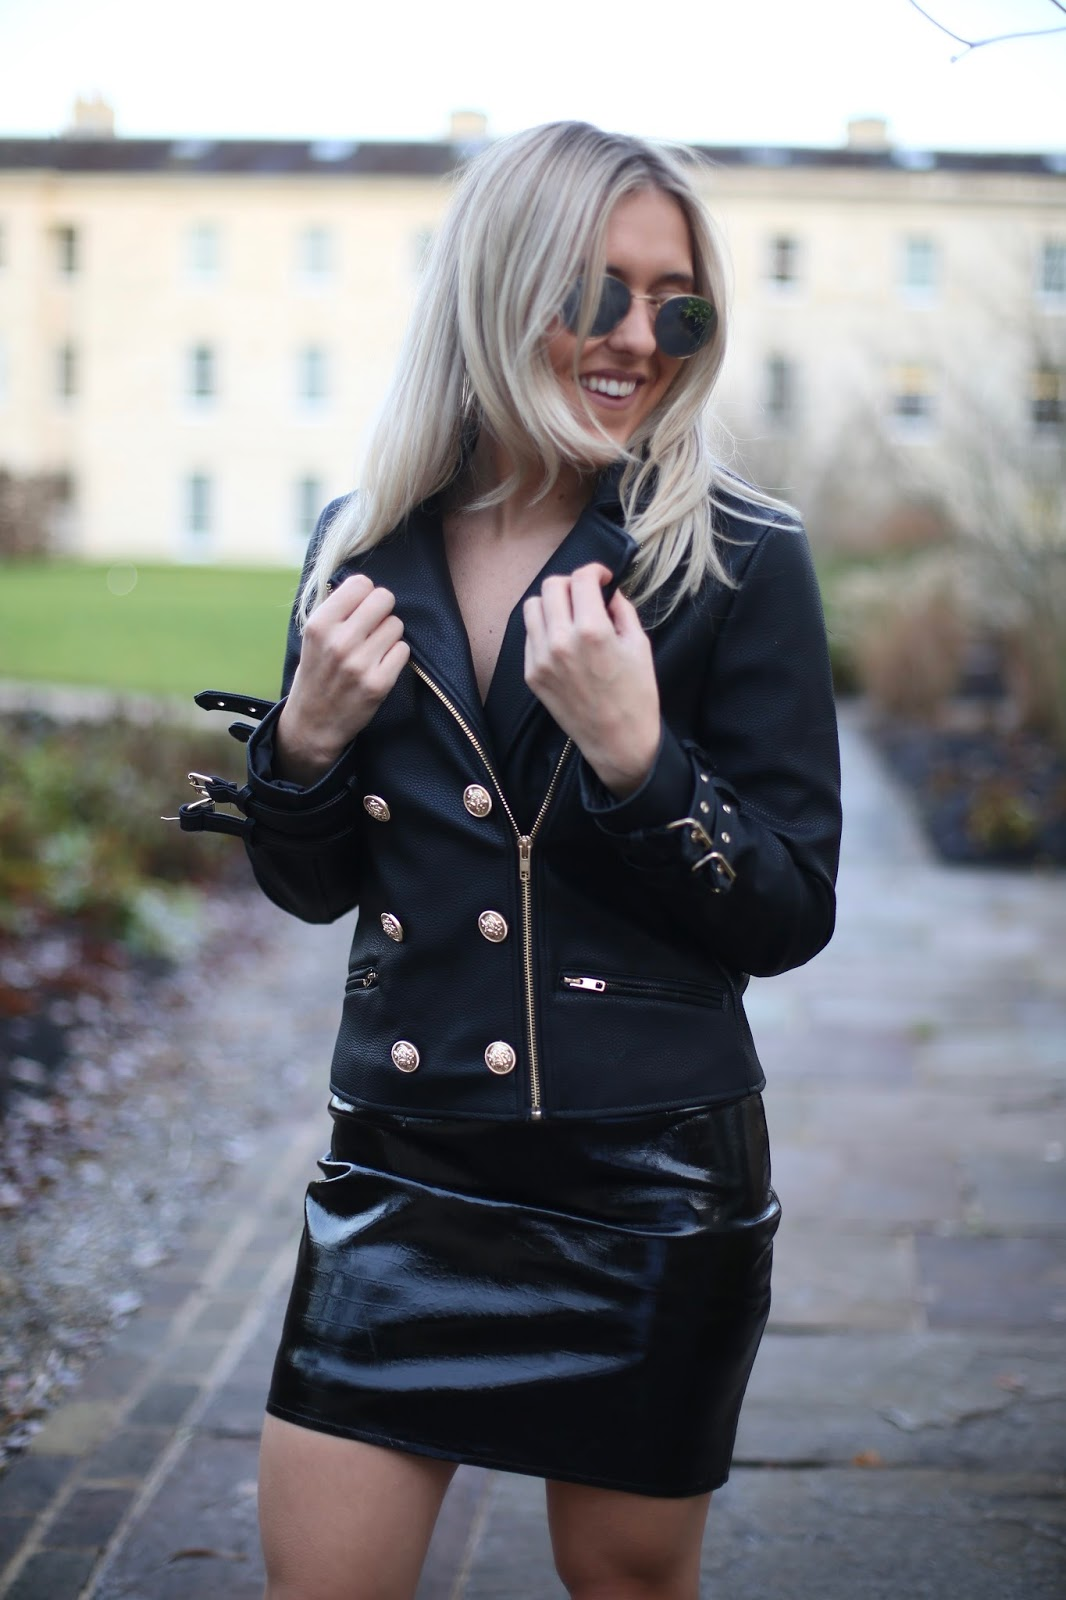 d4fef0fb4868 Winter Party Outfit Ideas